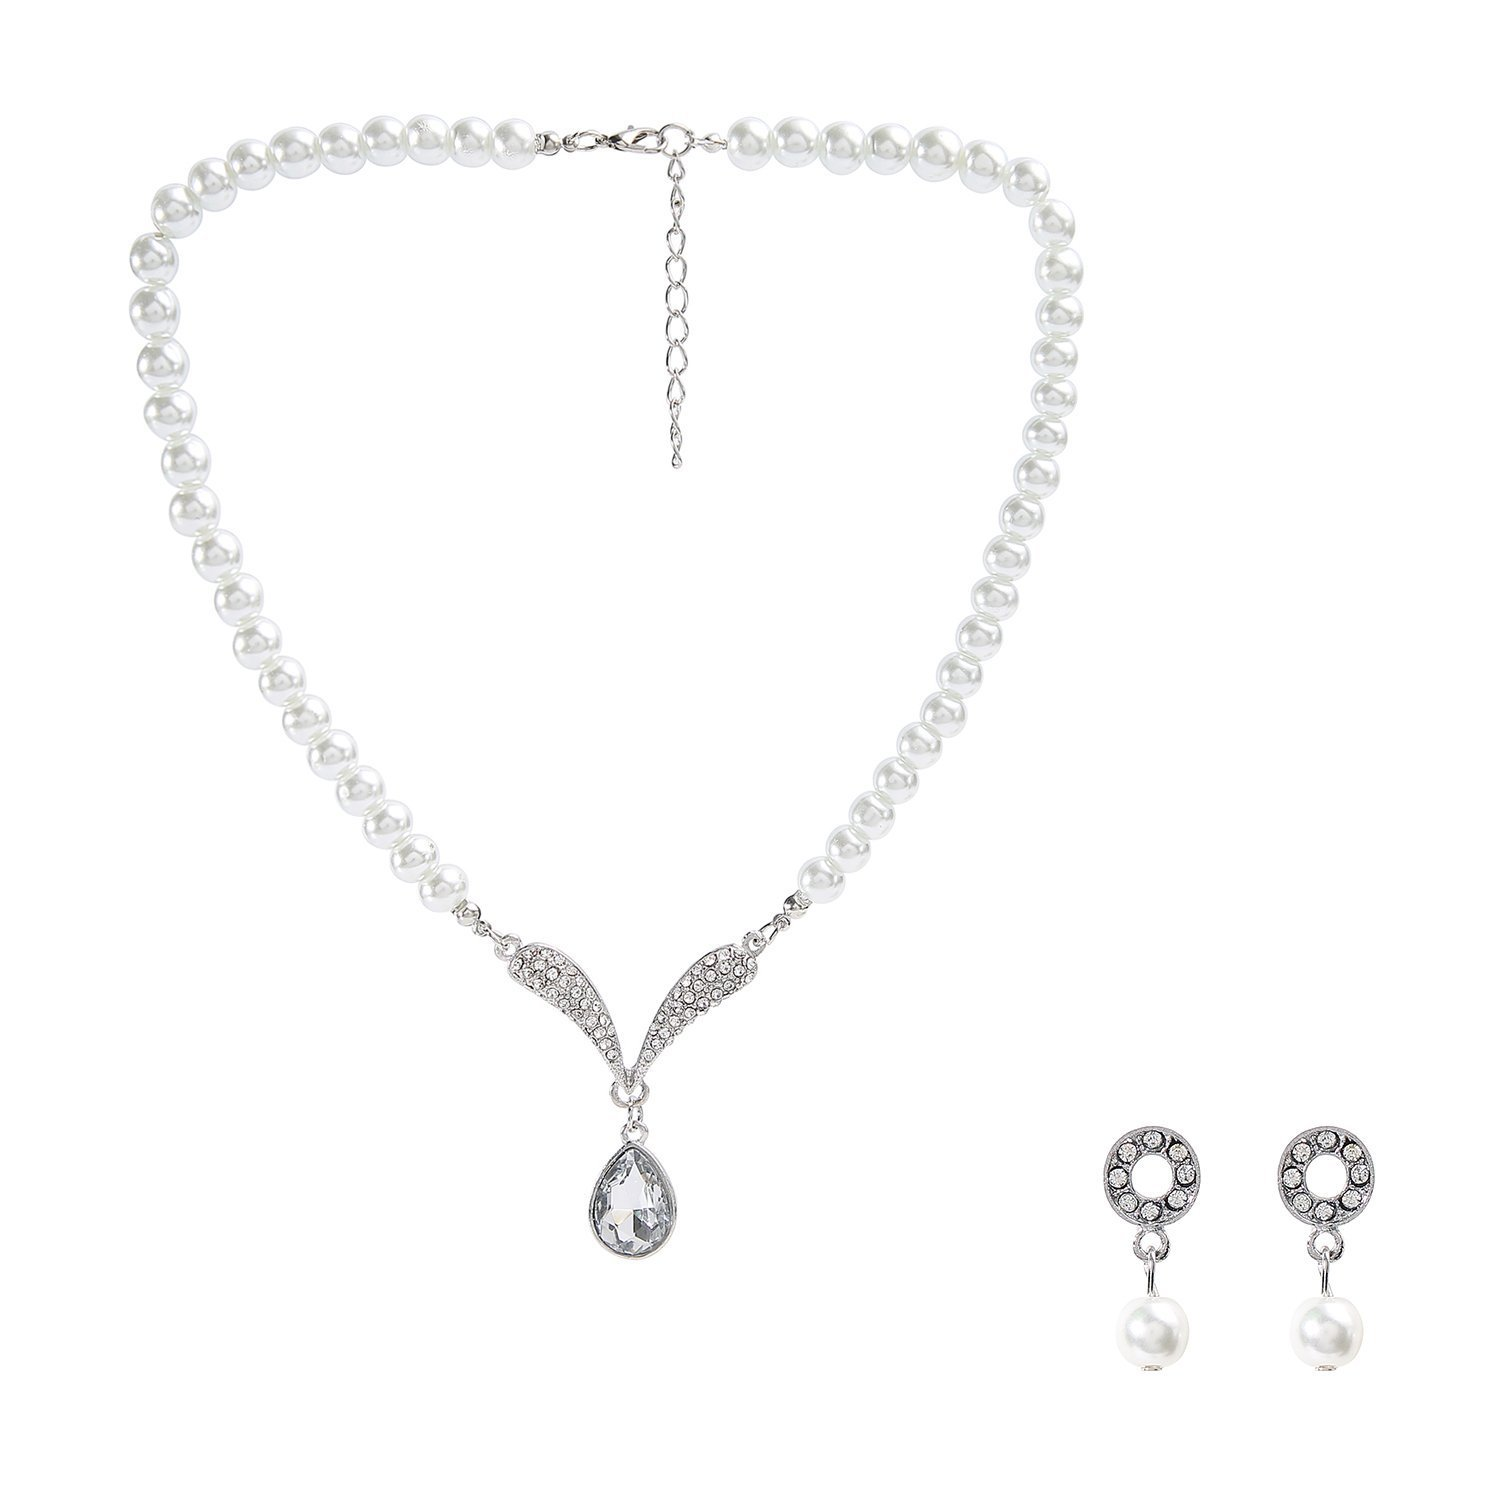 Metme 1920s Gatsby Accessories Set Pearls Crystal Pendant Necklace Rhinestone Earrings